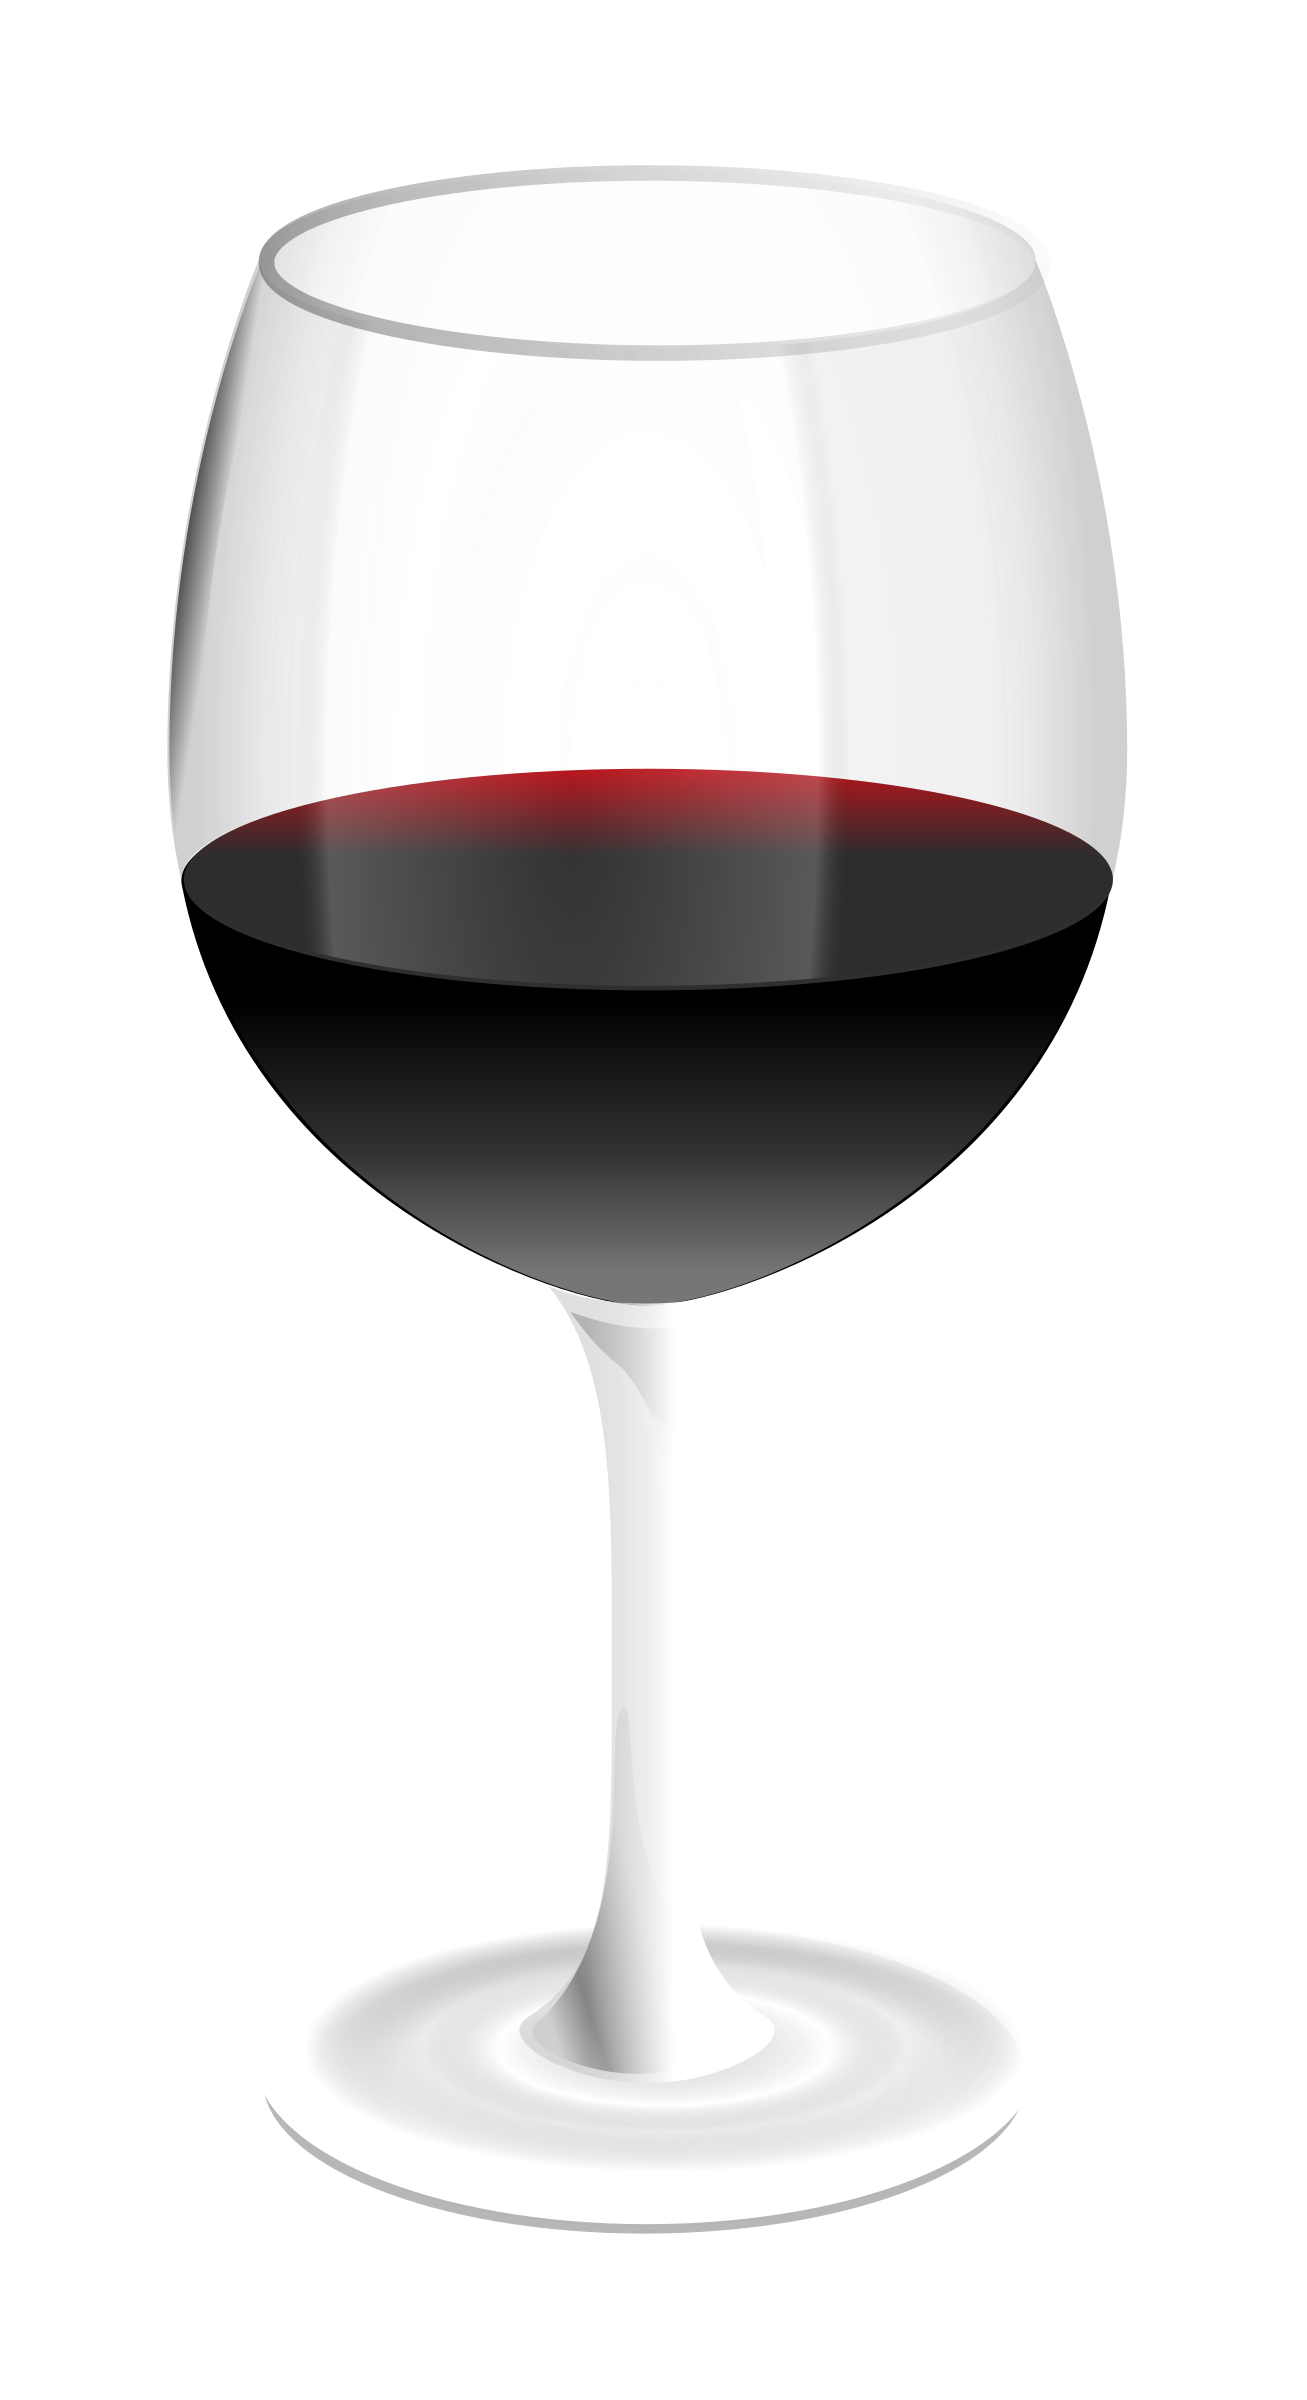 red wine glass by GMcGlinn